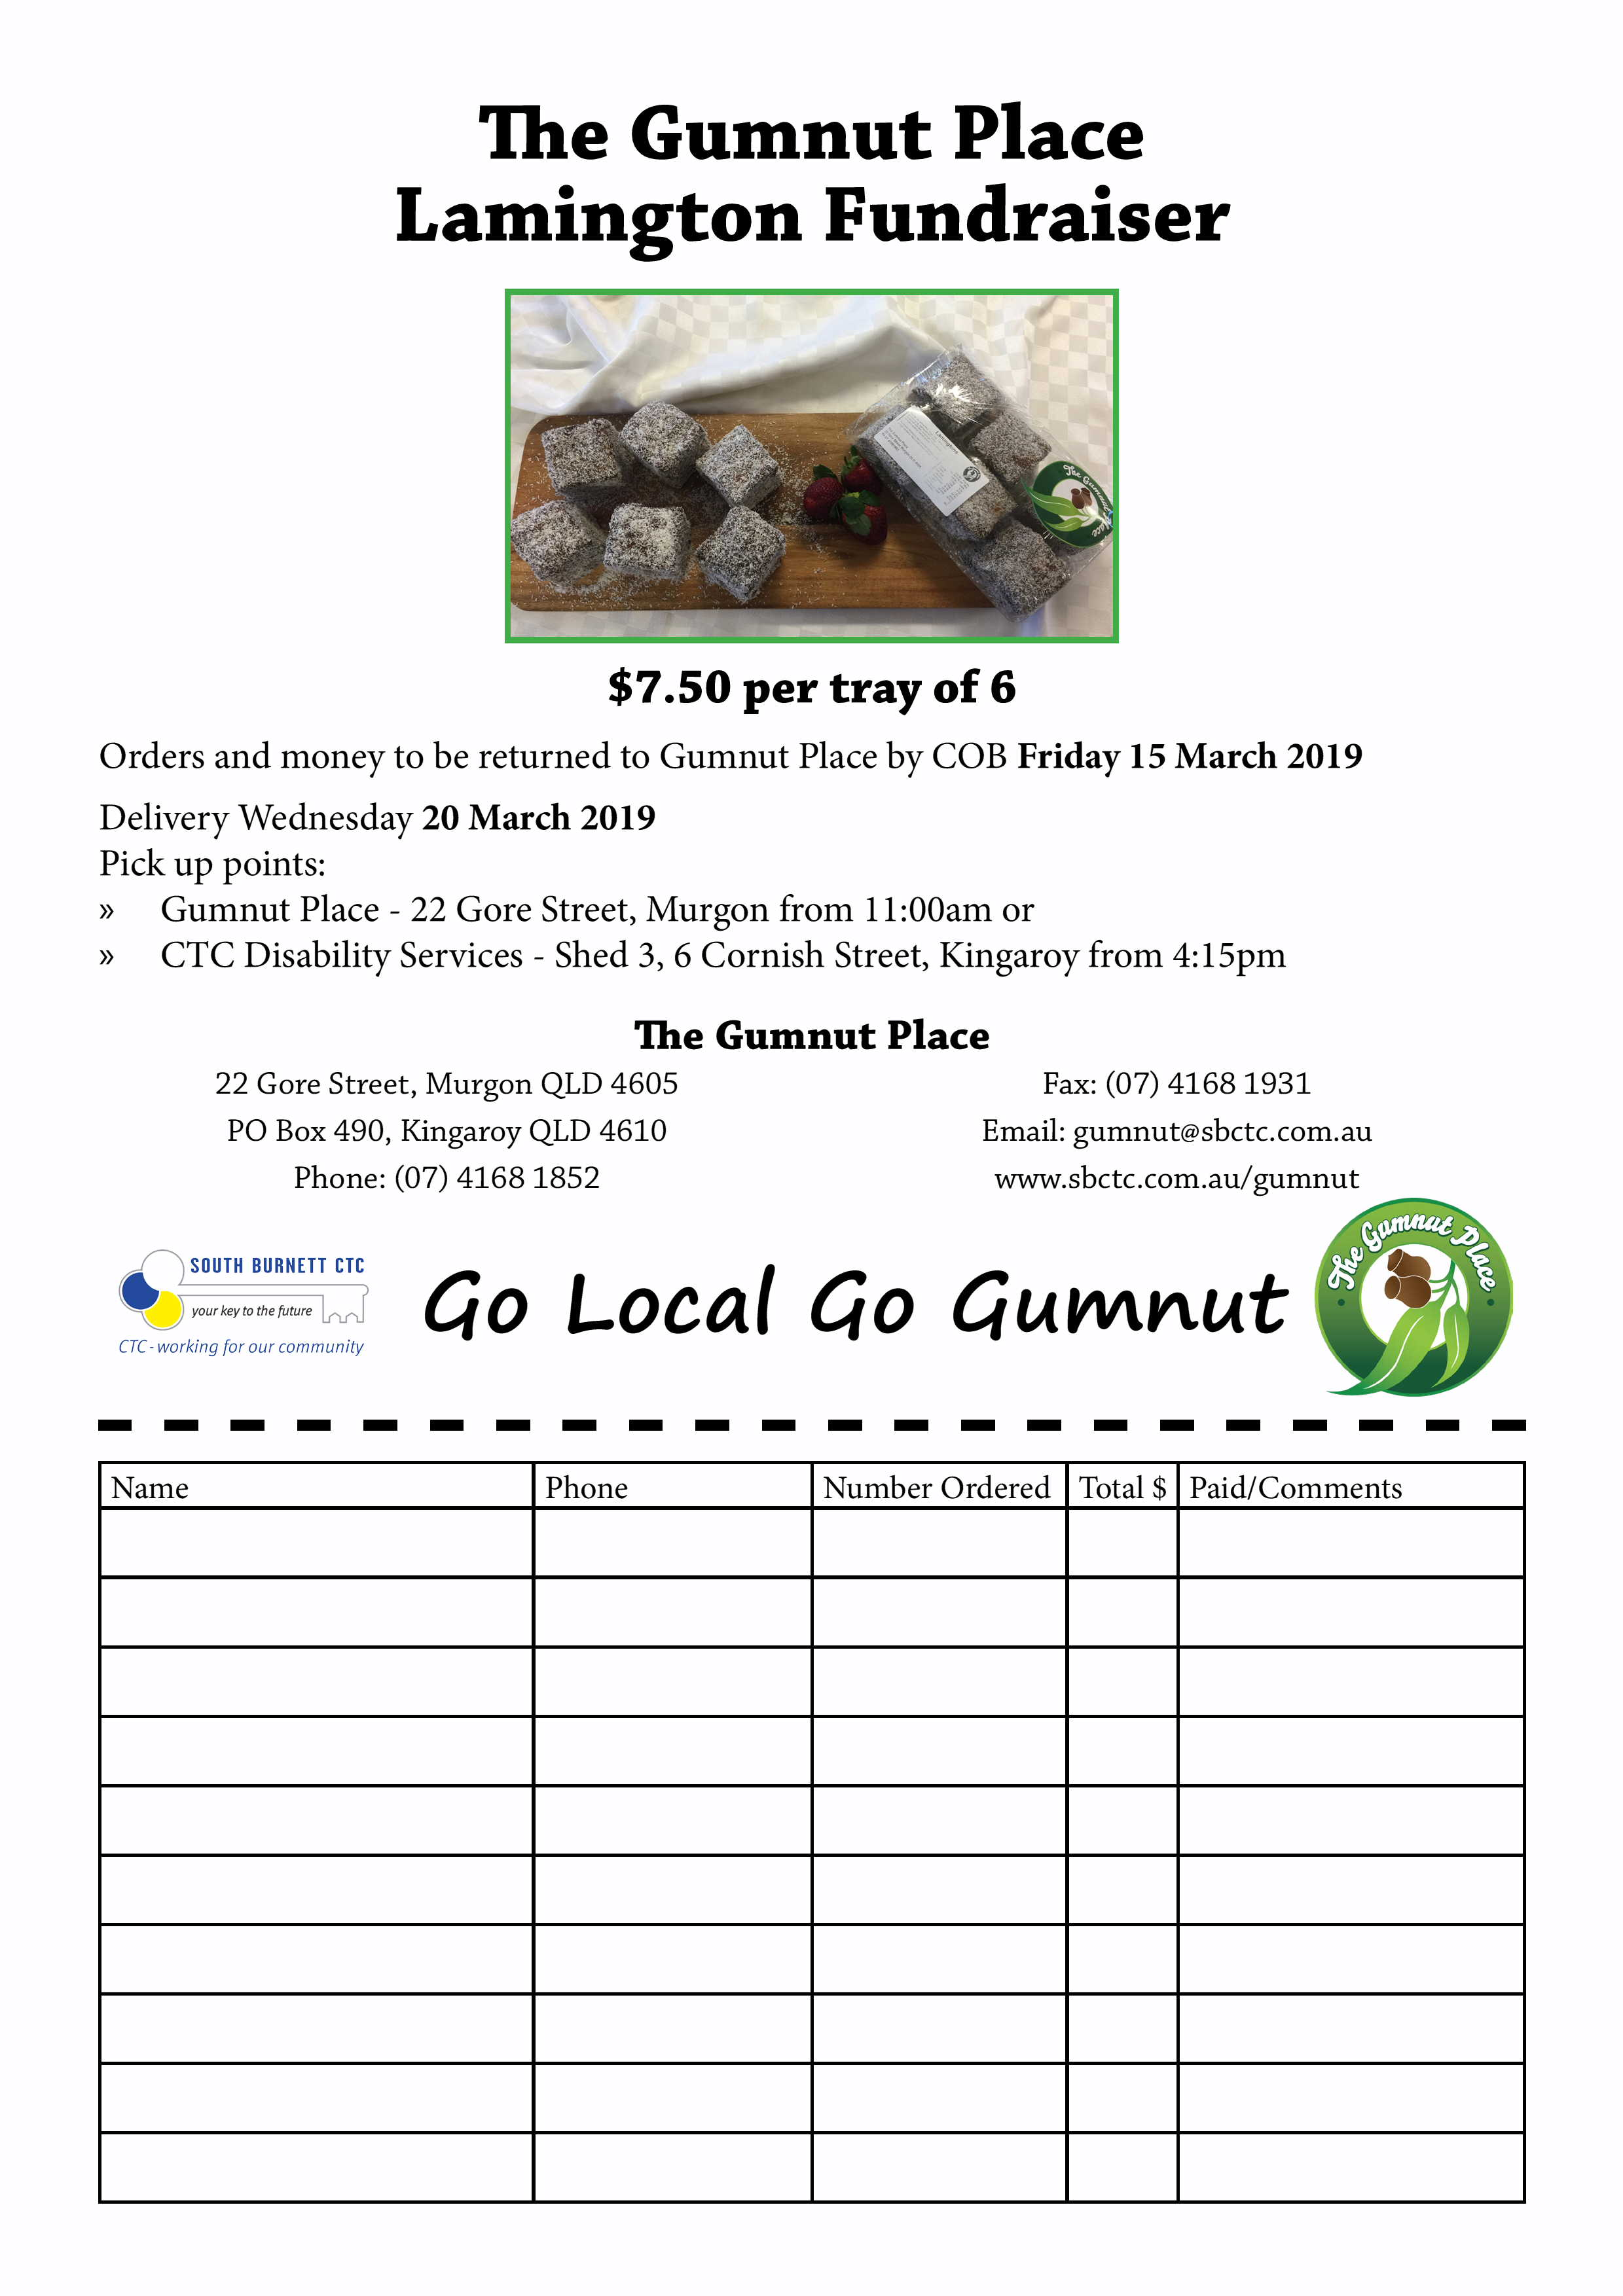 08.02.19_Gumnut Fundraiser Flyer_Lamingtons.jpg